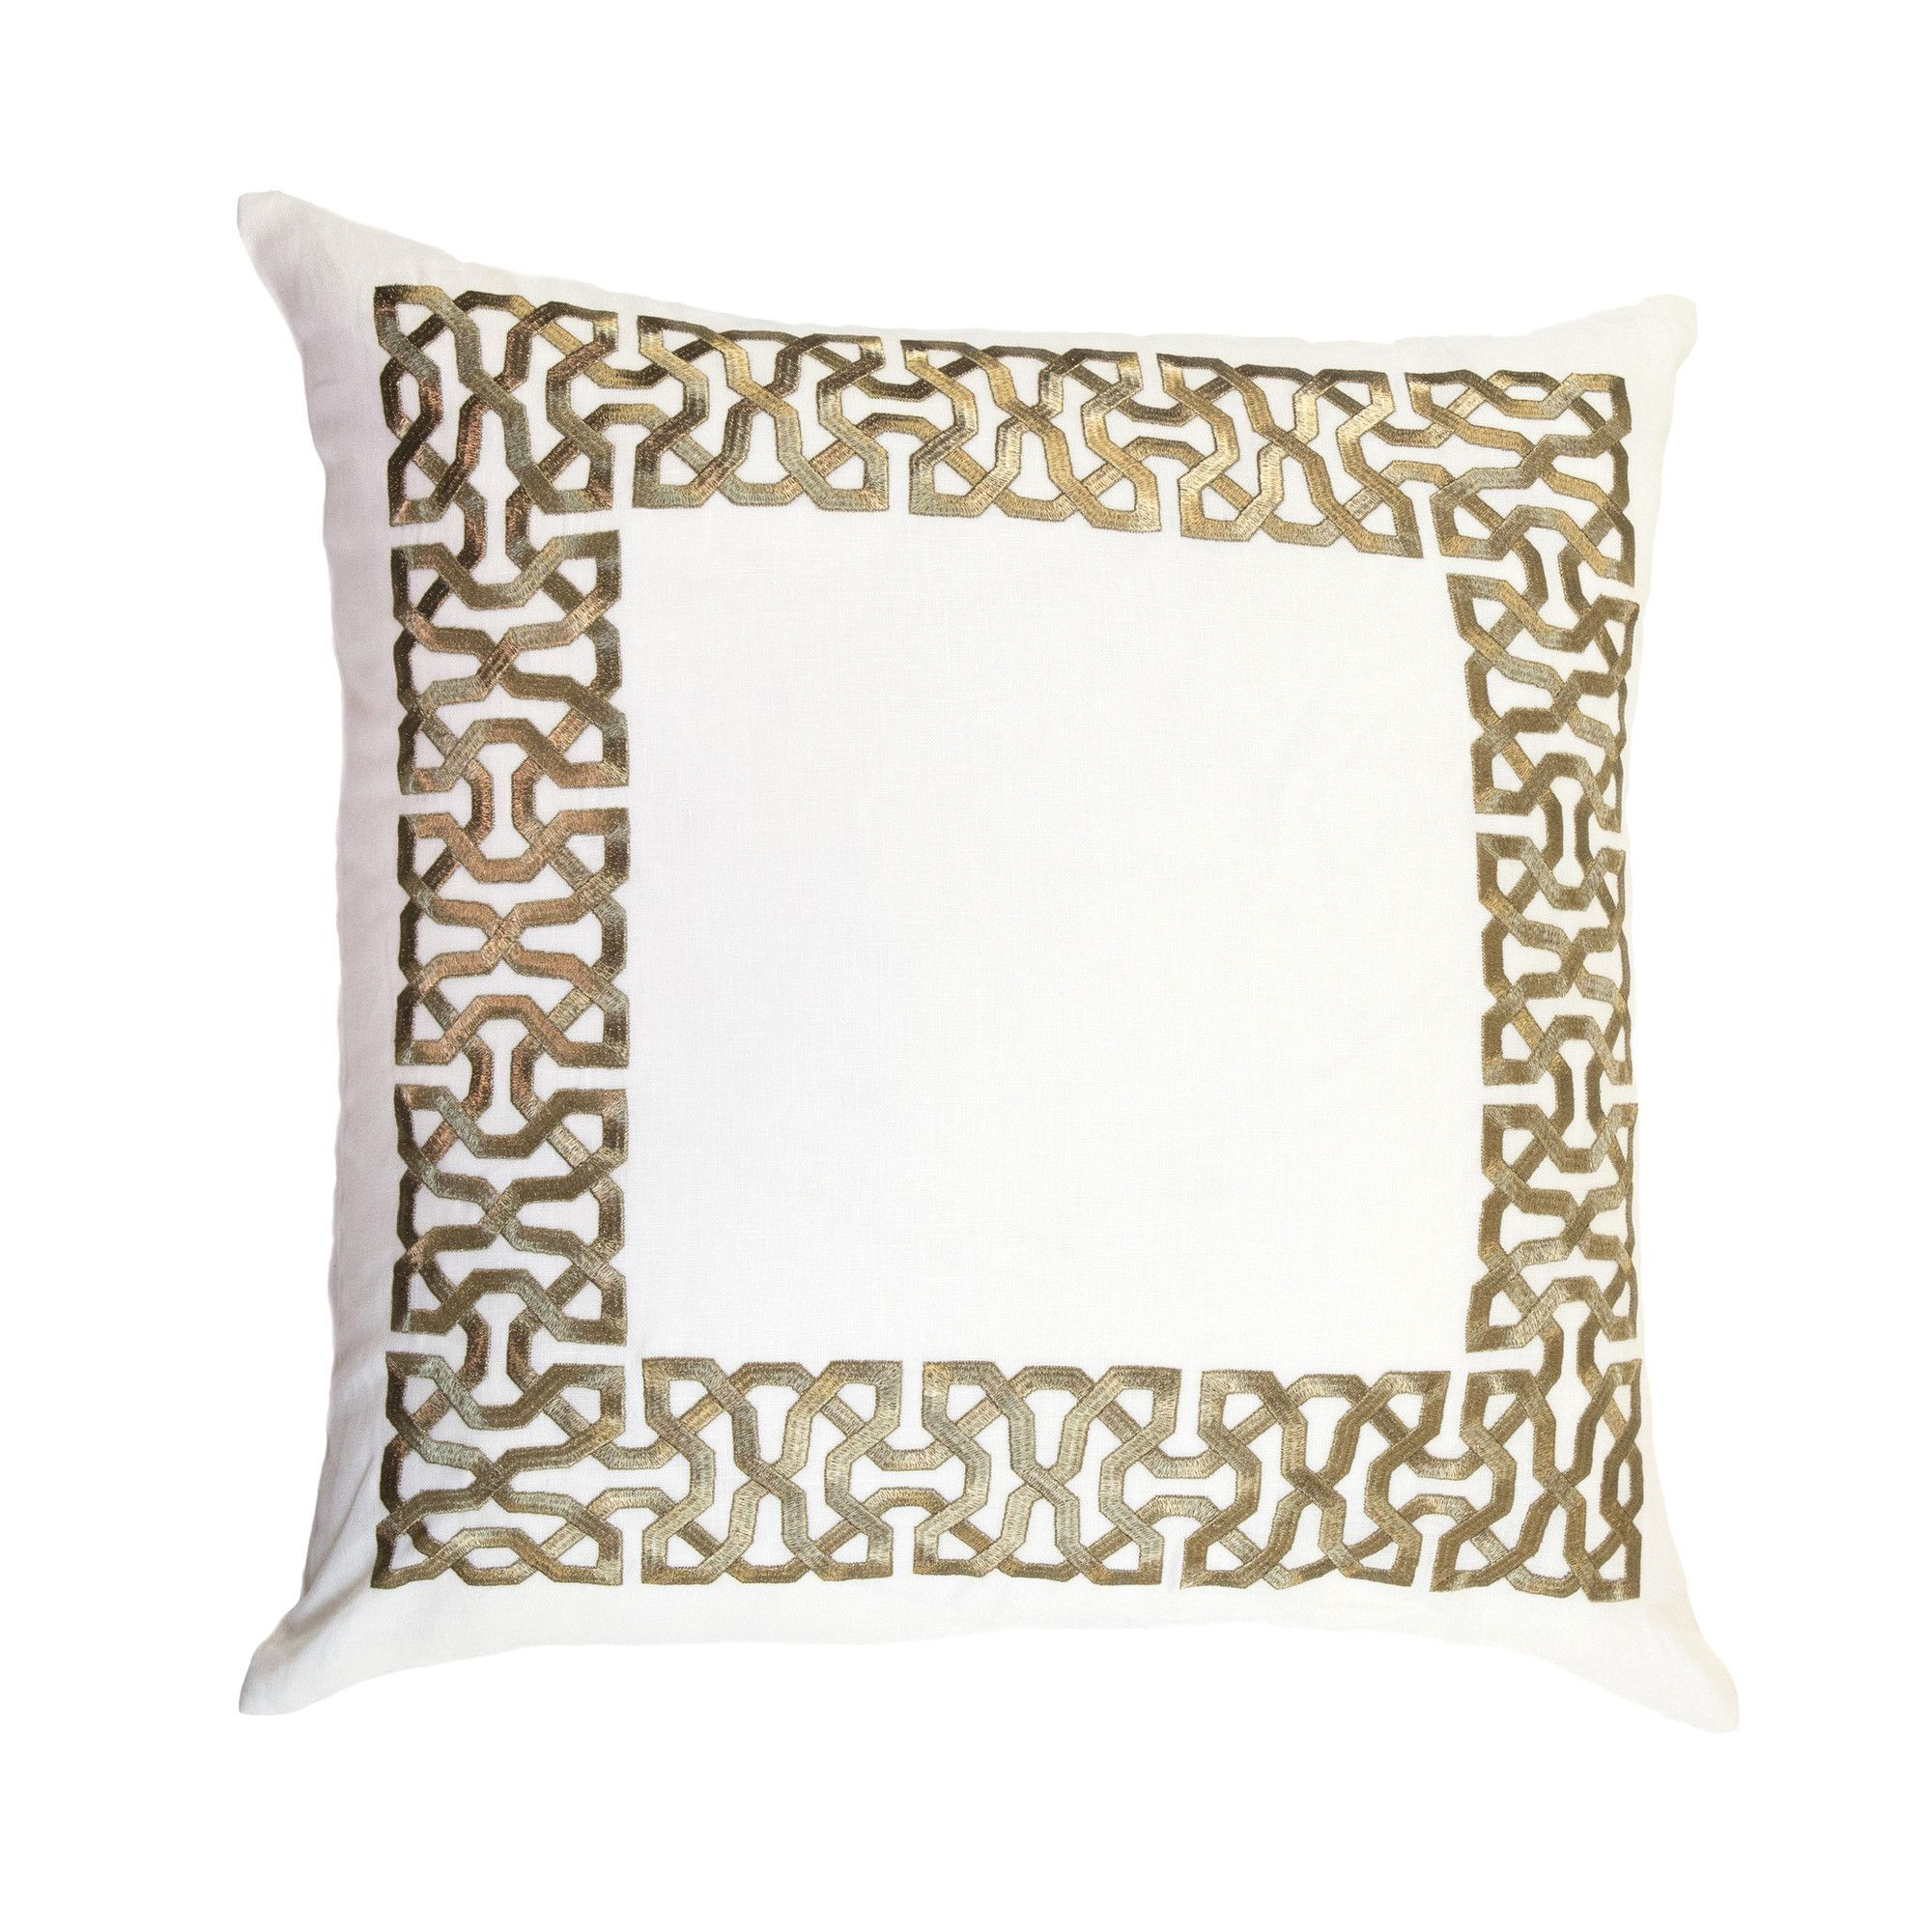 Symphony zari embroidery linen pillow cover products pinterest